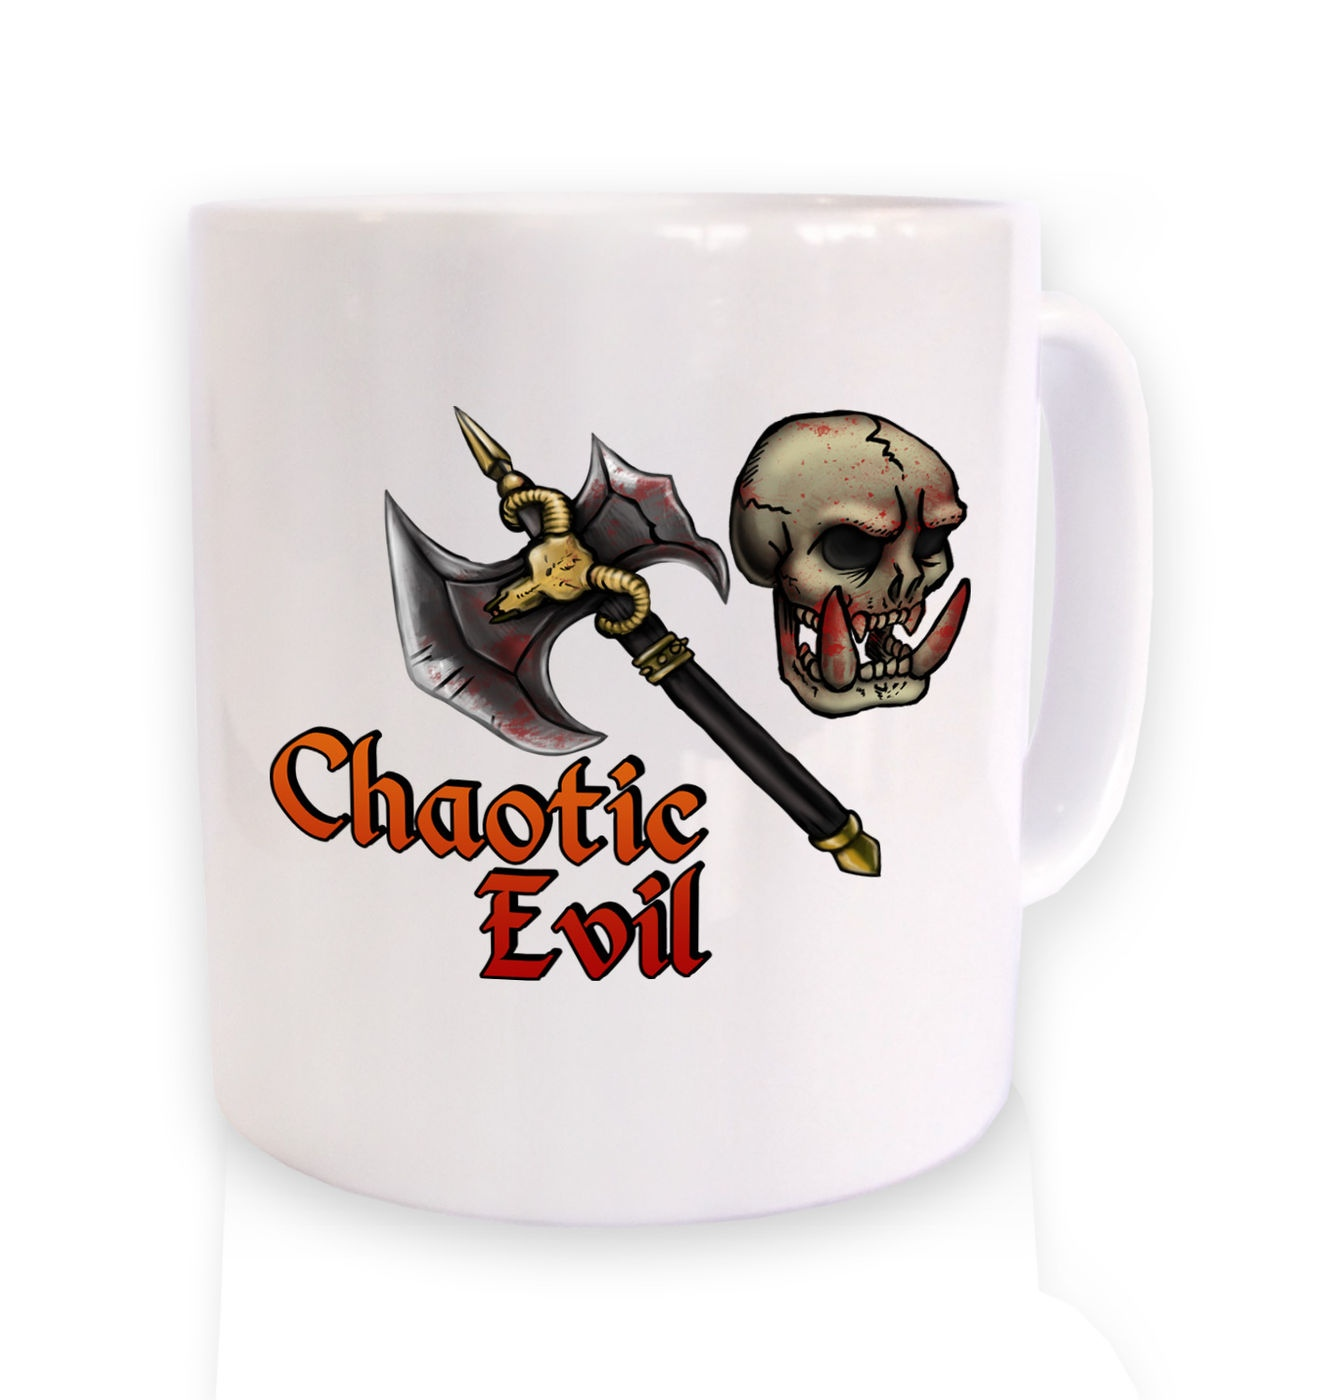 Cartoon Alignment Chaotic Evil ceramic mug - gaming mugs